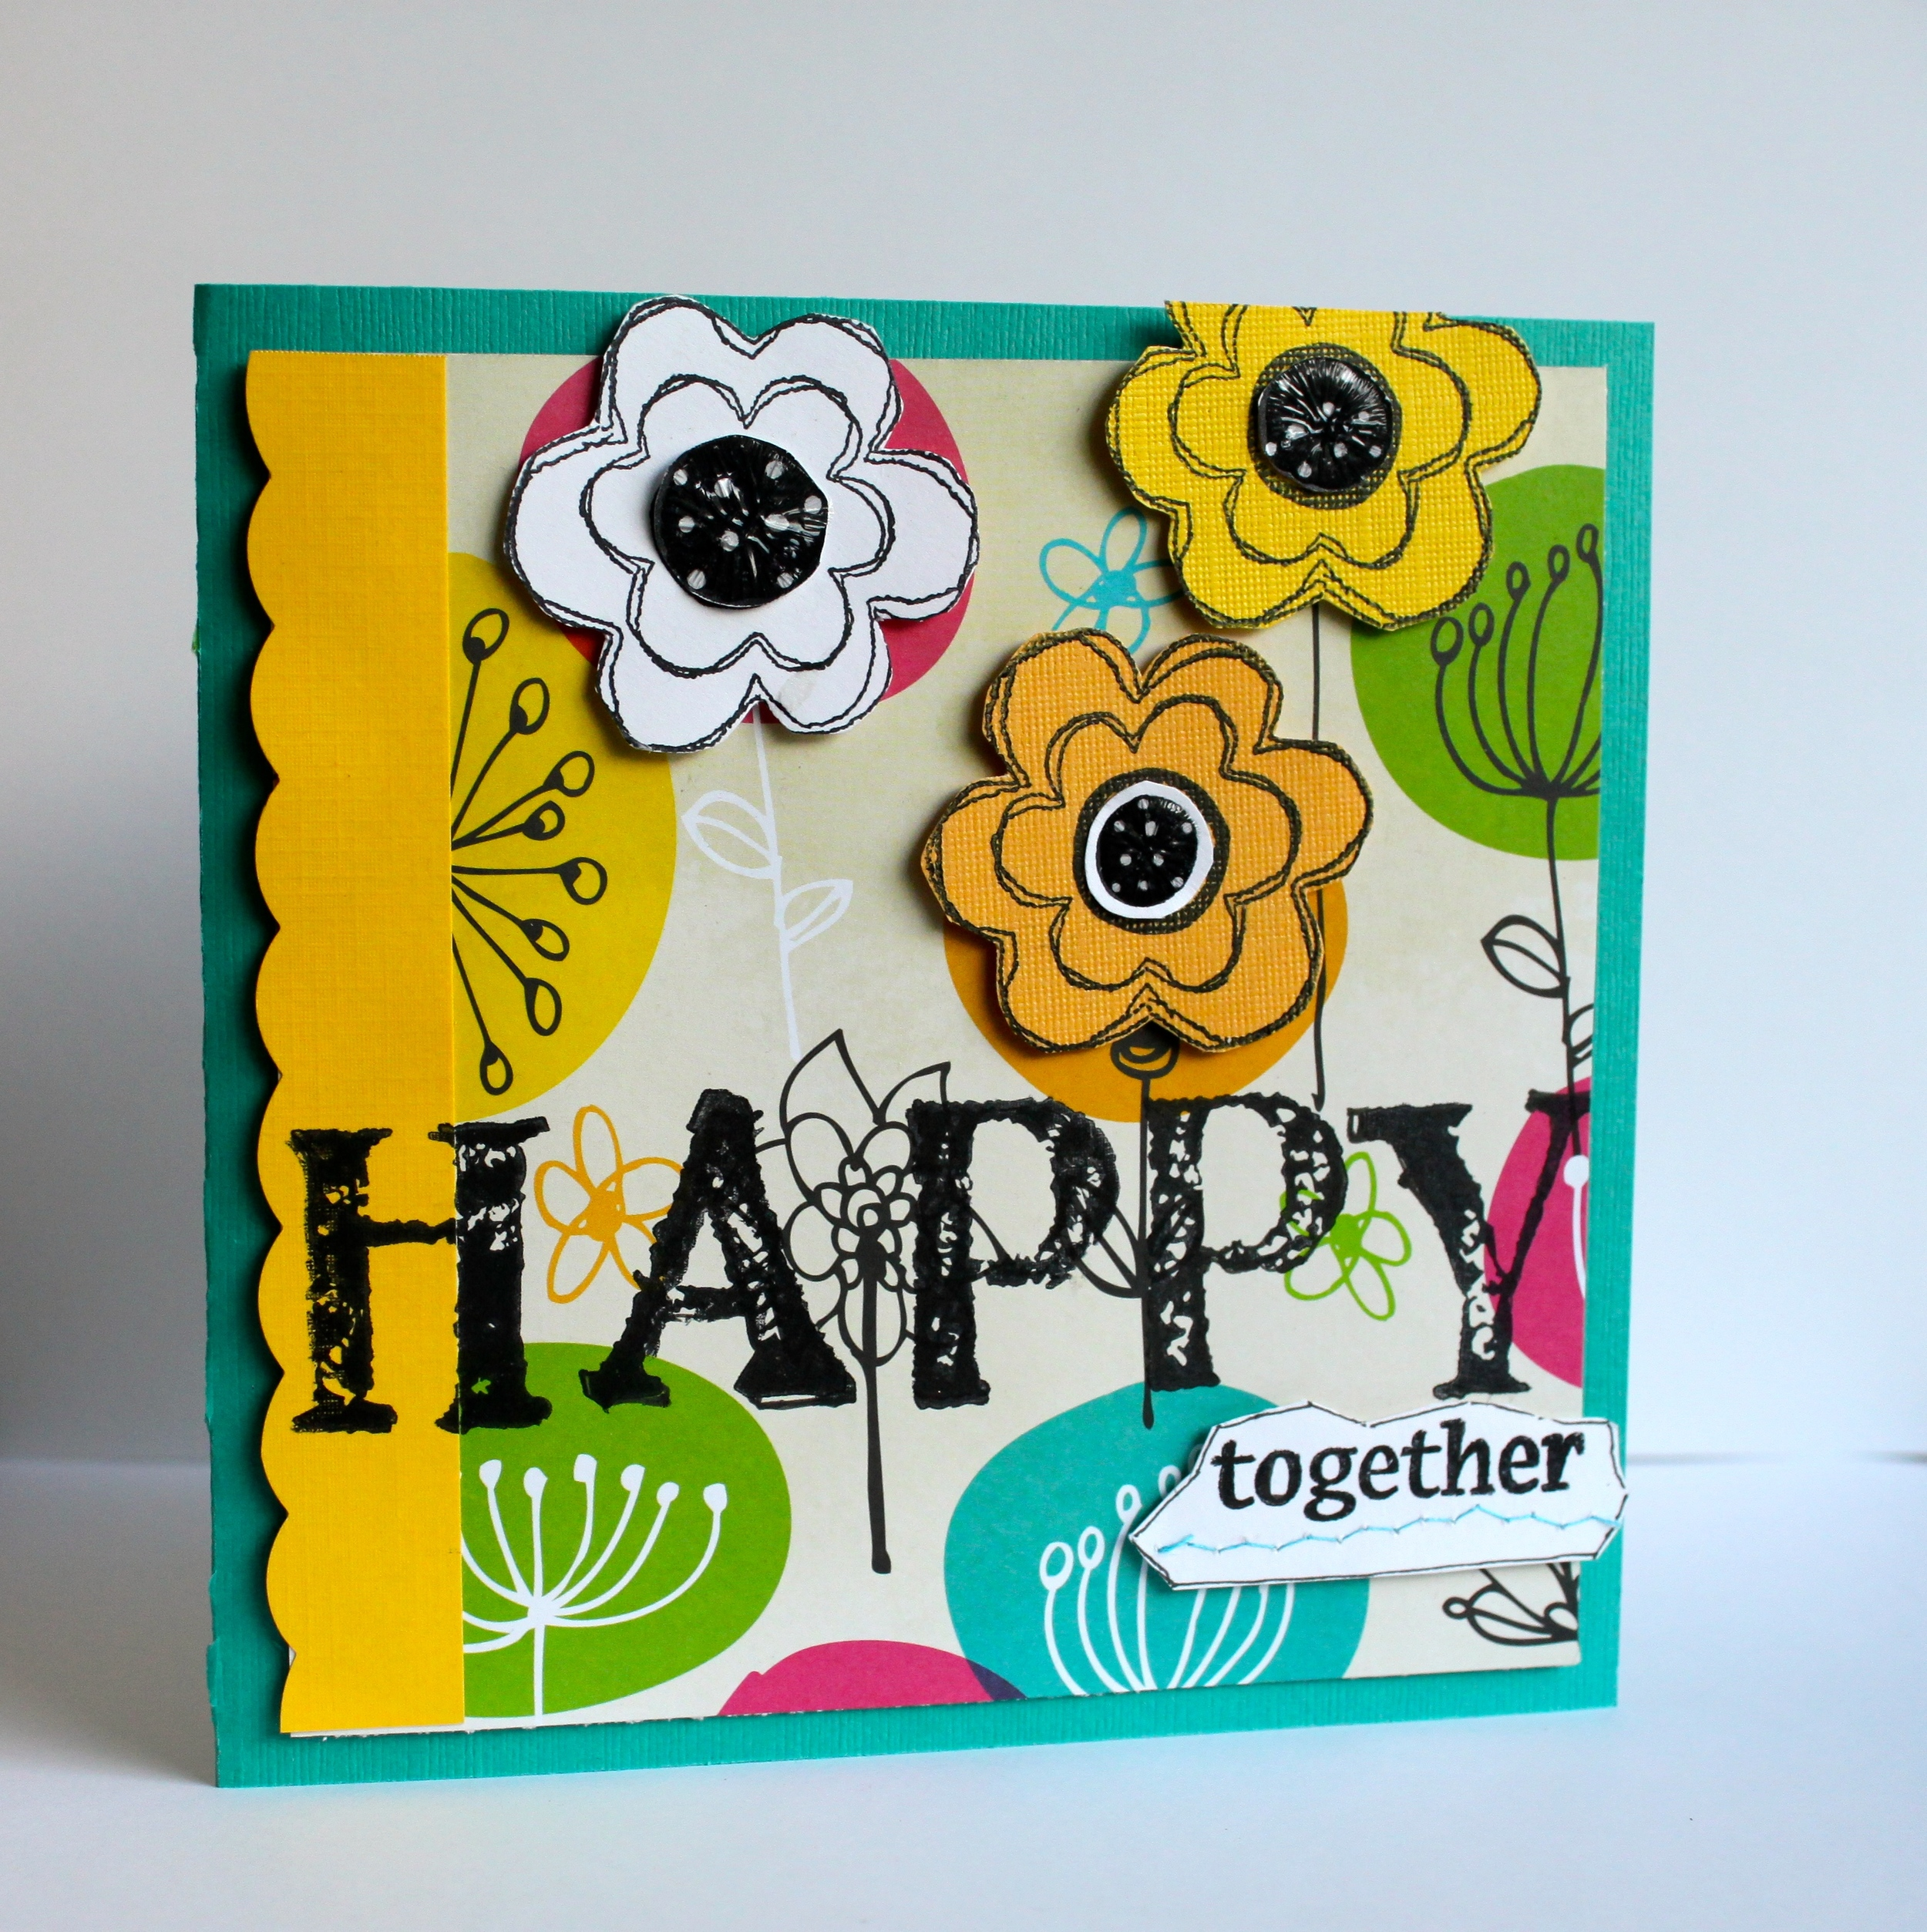 One of my handmade cards published as part of my guest artist spot in    The Stampers' Sample     r   magazine.